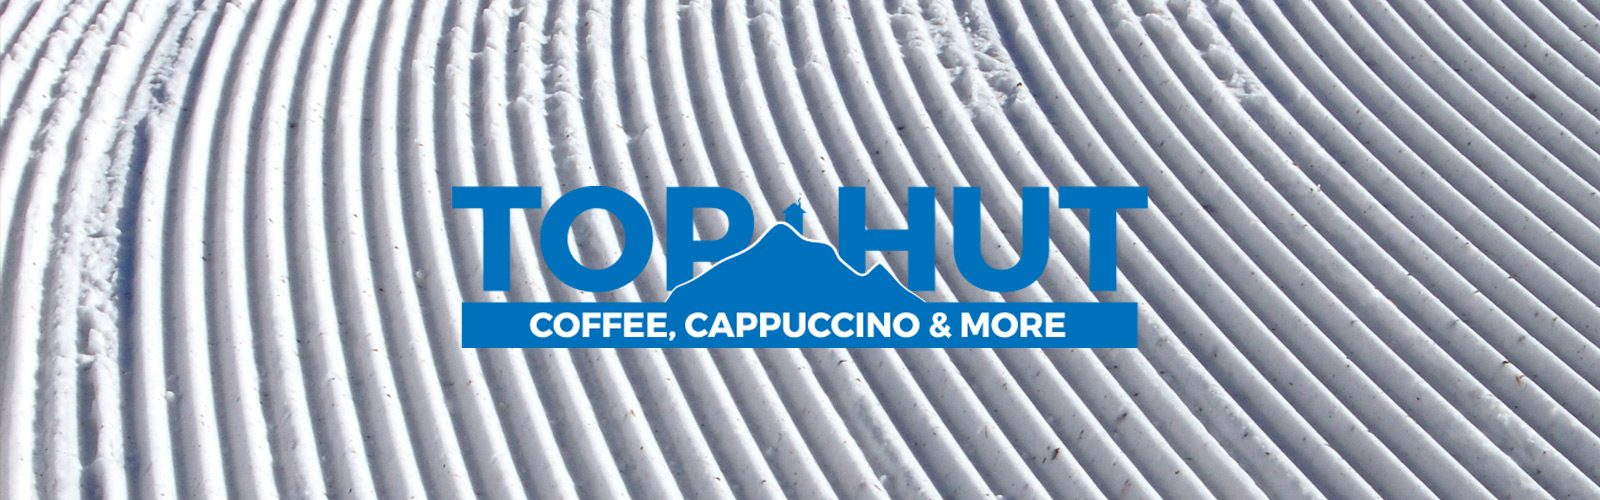 Ottawa Pubs & Cafes Top Hut Cafe at the Peaks